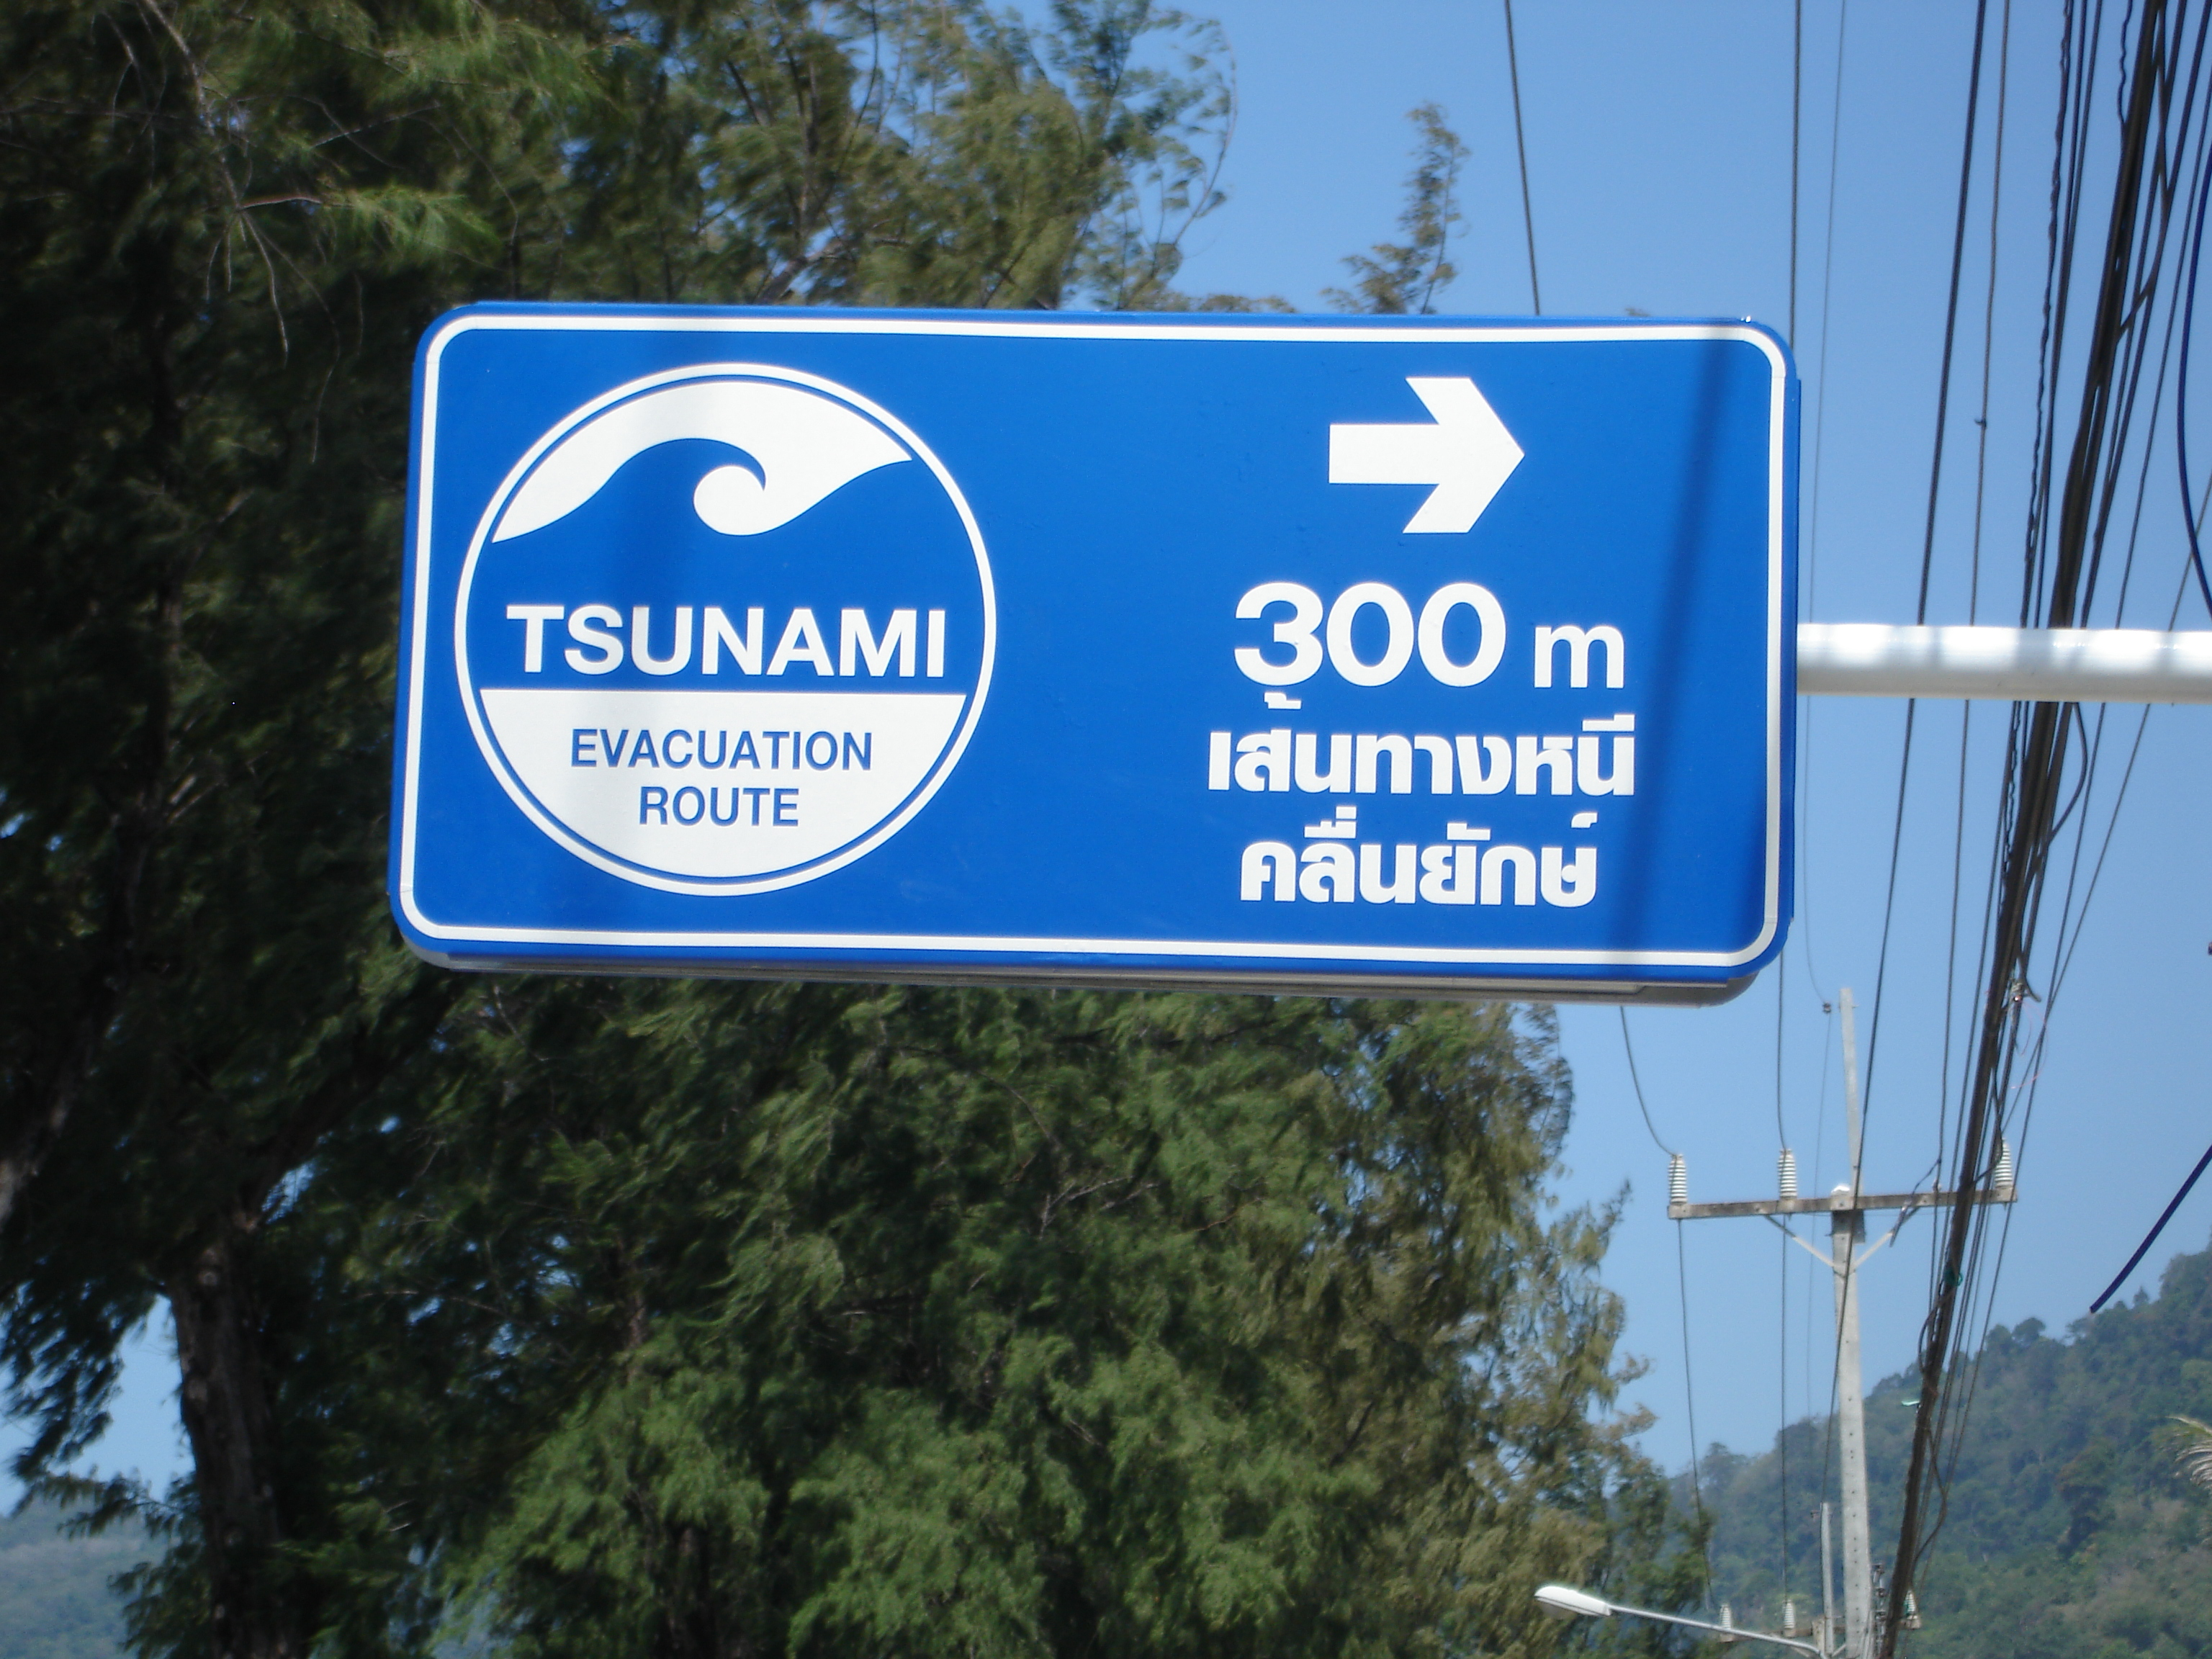 Tsunami Evacuation Route sign near Loma Park on Patong Beach, Phuket, Thailand. Photo taken by Mark Jochim on December 24, 2005.